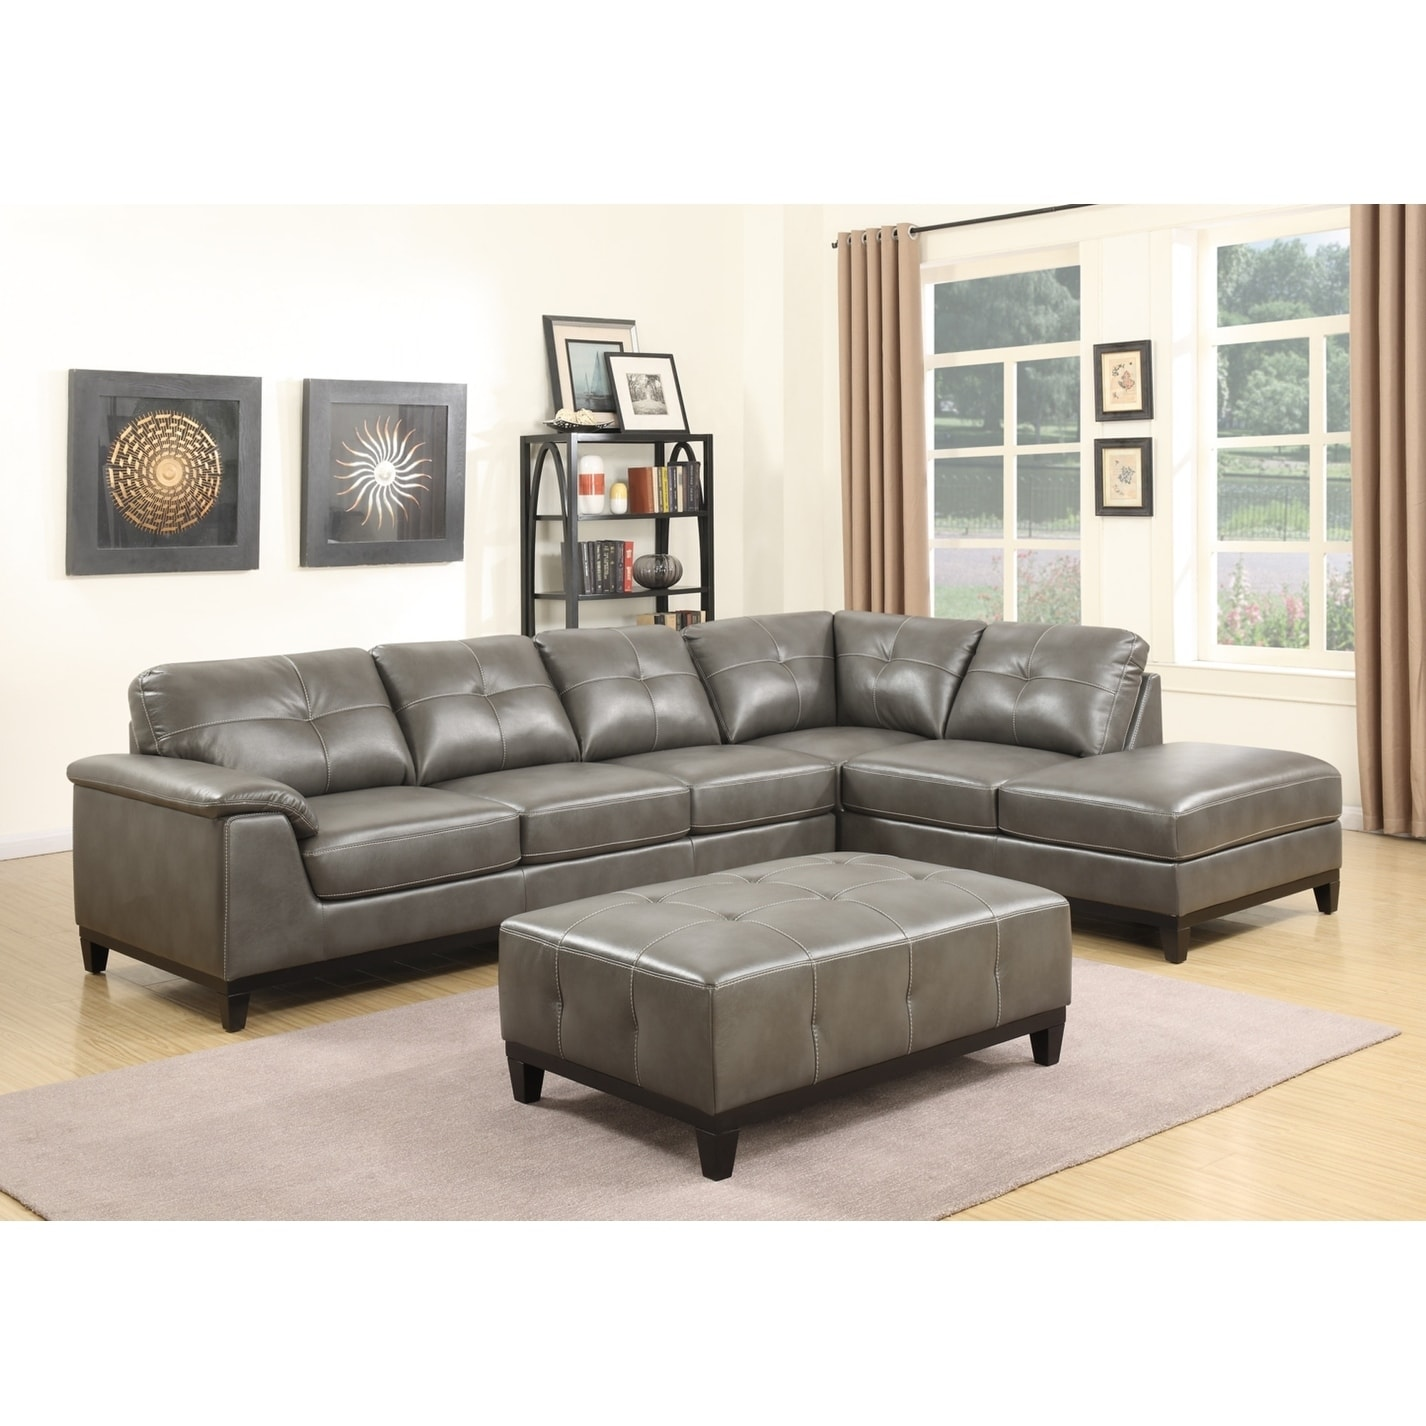 Copper Grove Kinglake 3 Piece Sectional With 6 Seats